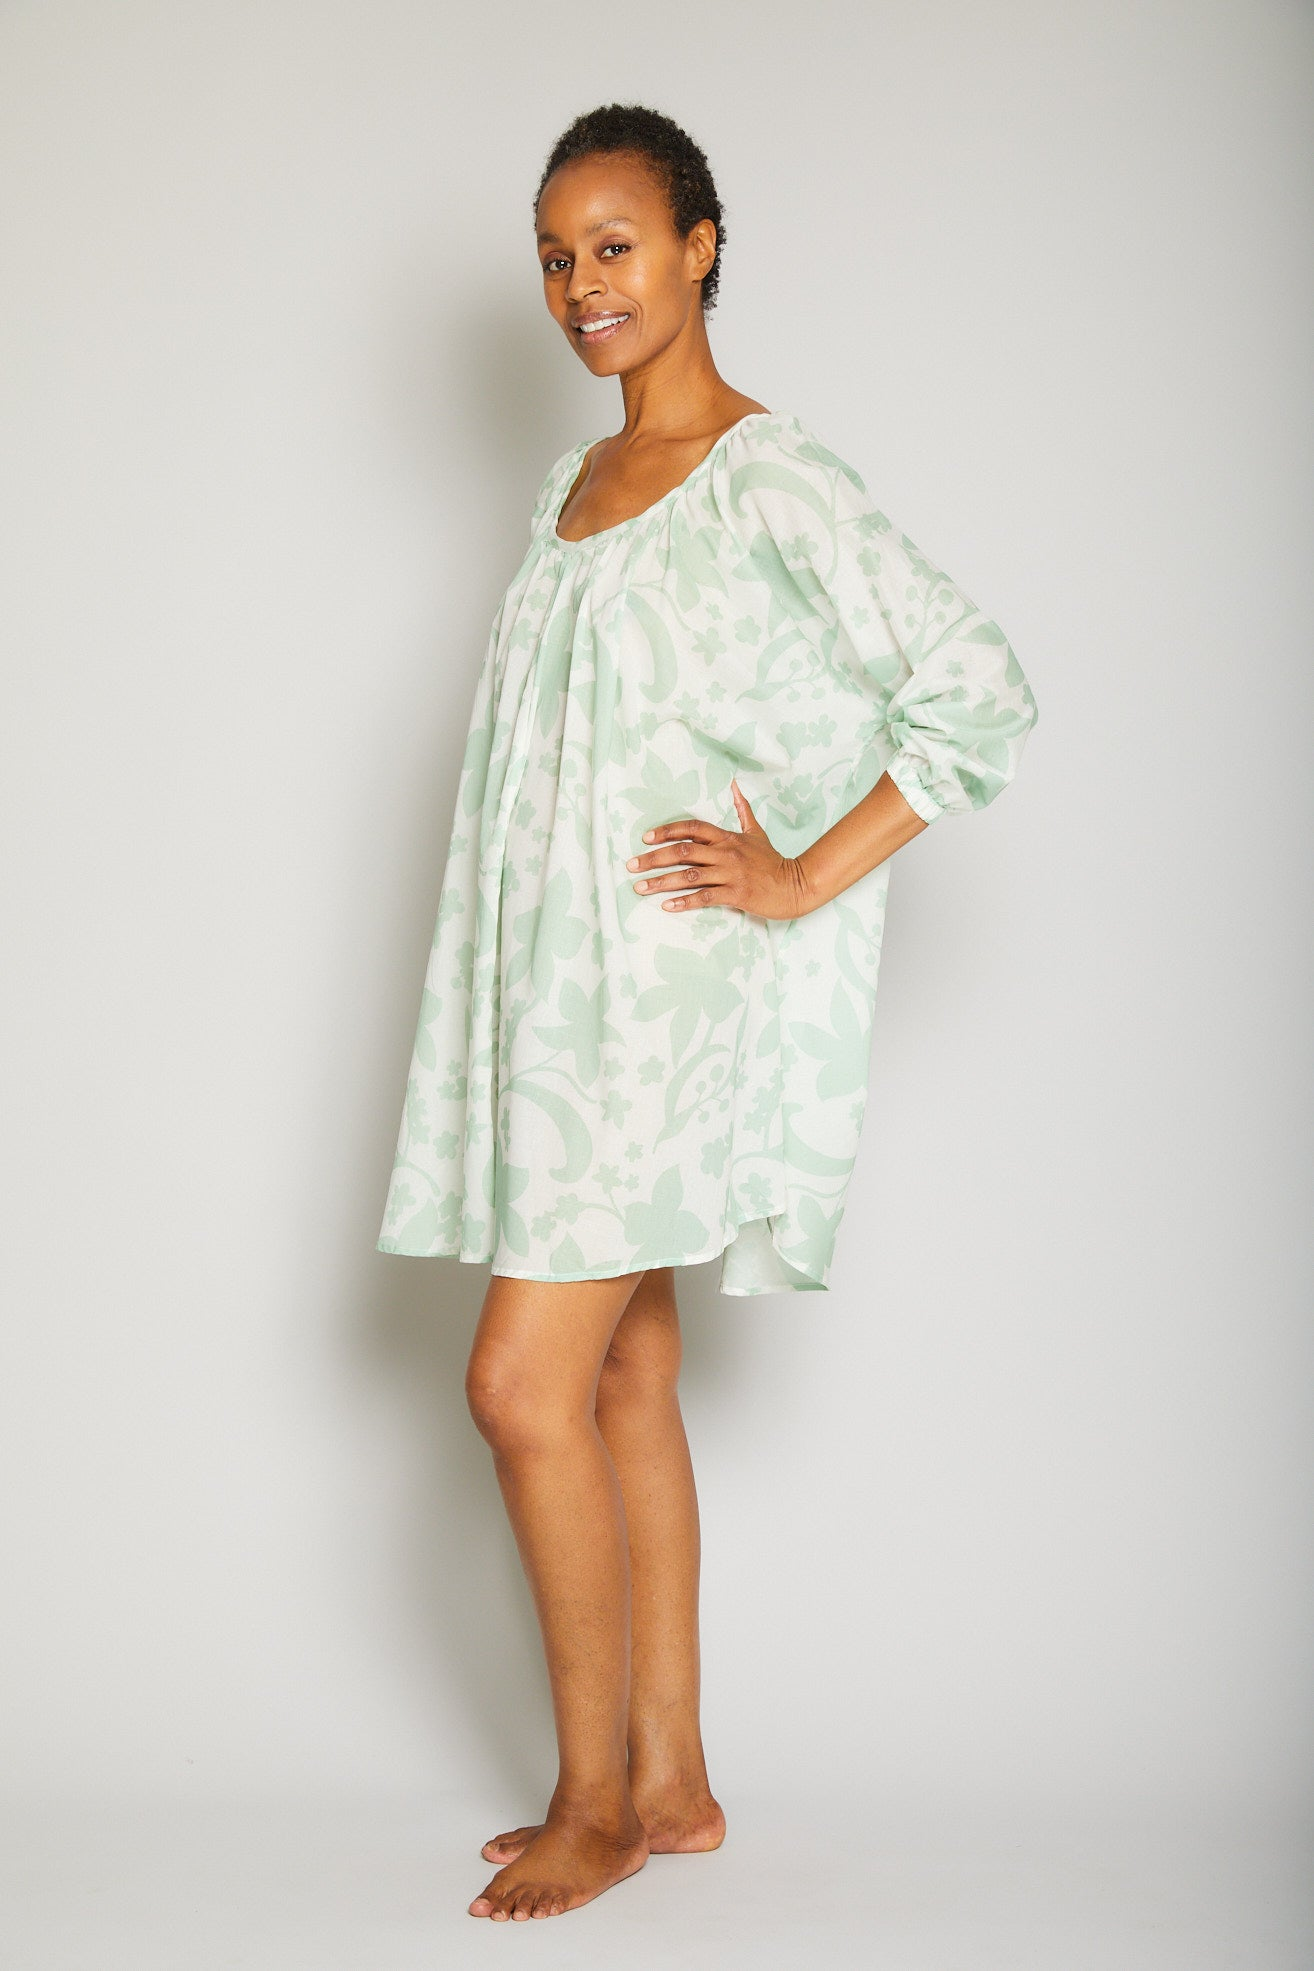 Hawaiian Maley Tunic